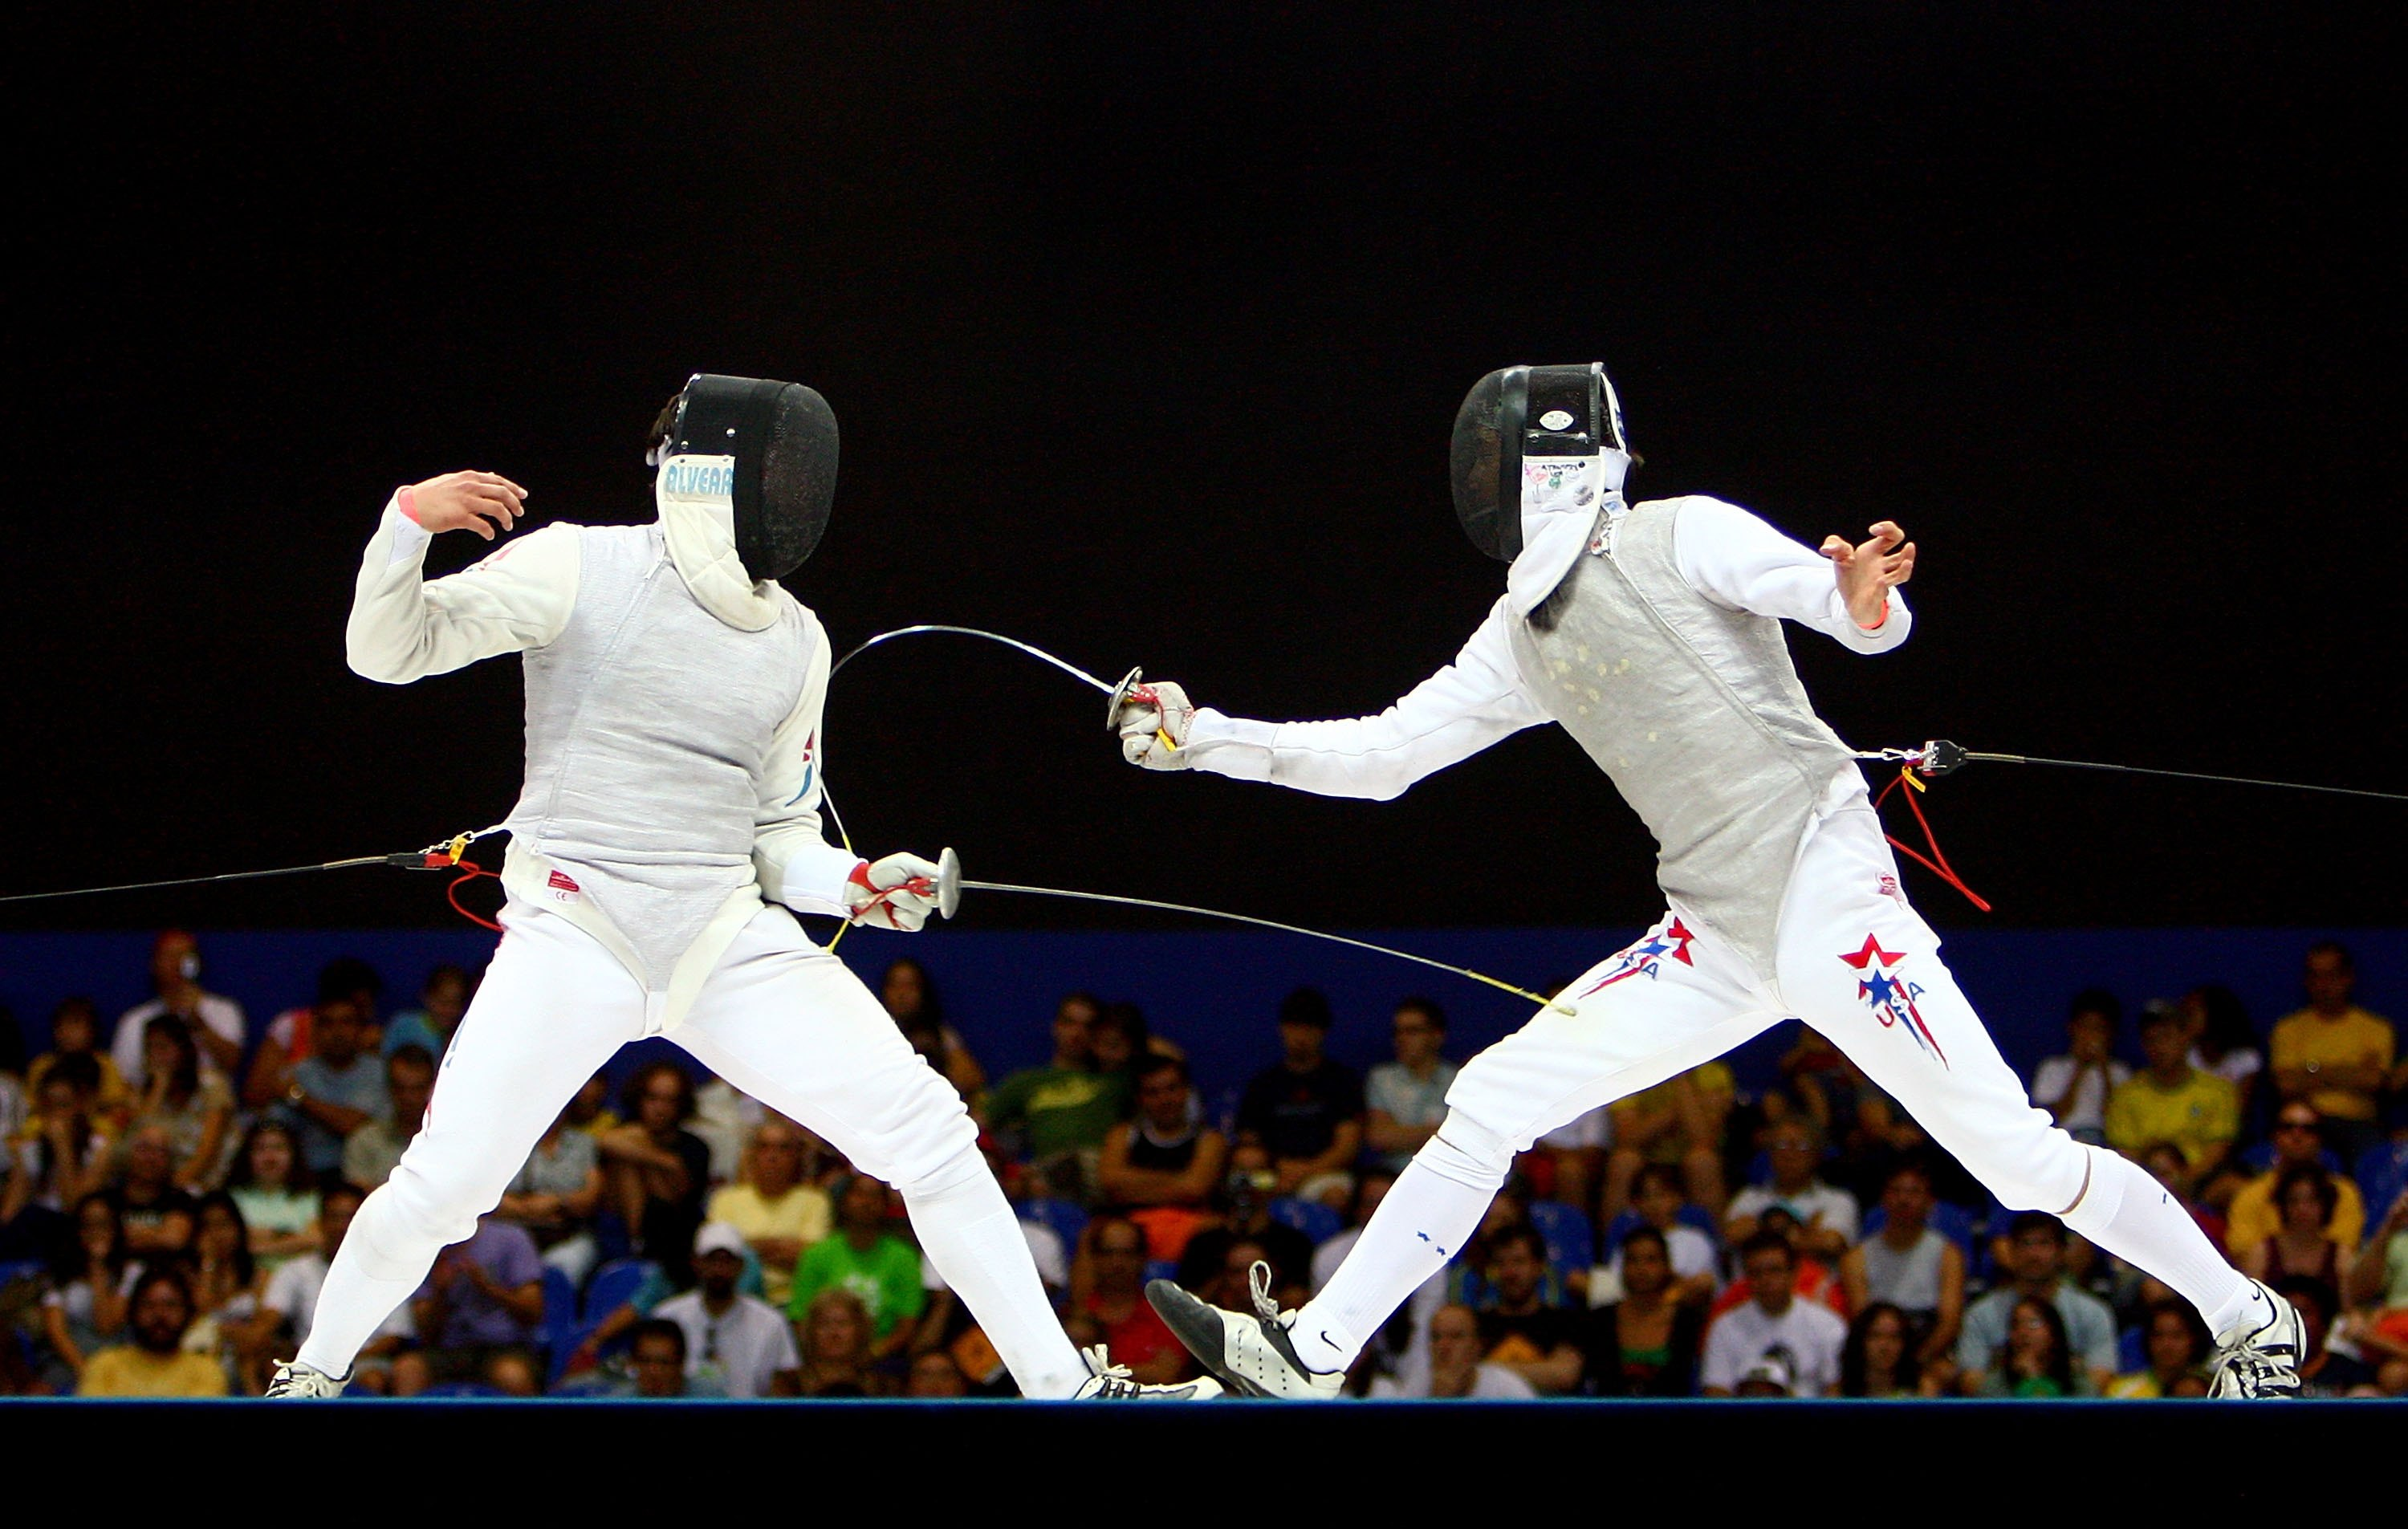 Andras Horanyi of the United States of America (R) and Felipe Alvear of Chile compete in the Men's Individual Foil final during the XV Pan American Games on July 14, 2007 at Copacabana Beach in Rio De Janeiro, Brazil.  (Photo by Donald Miralle/Getty Images)